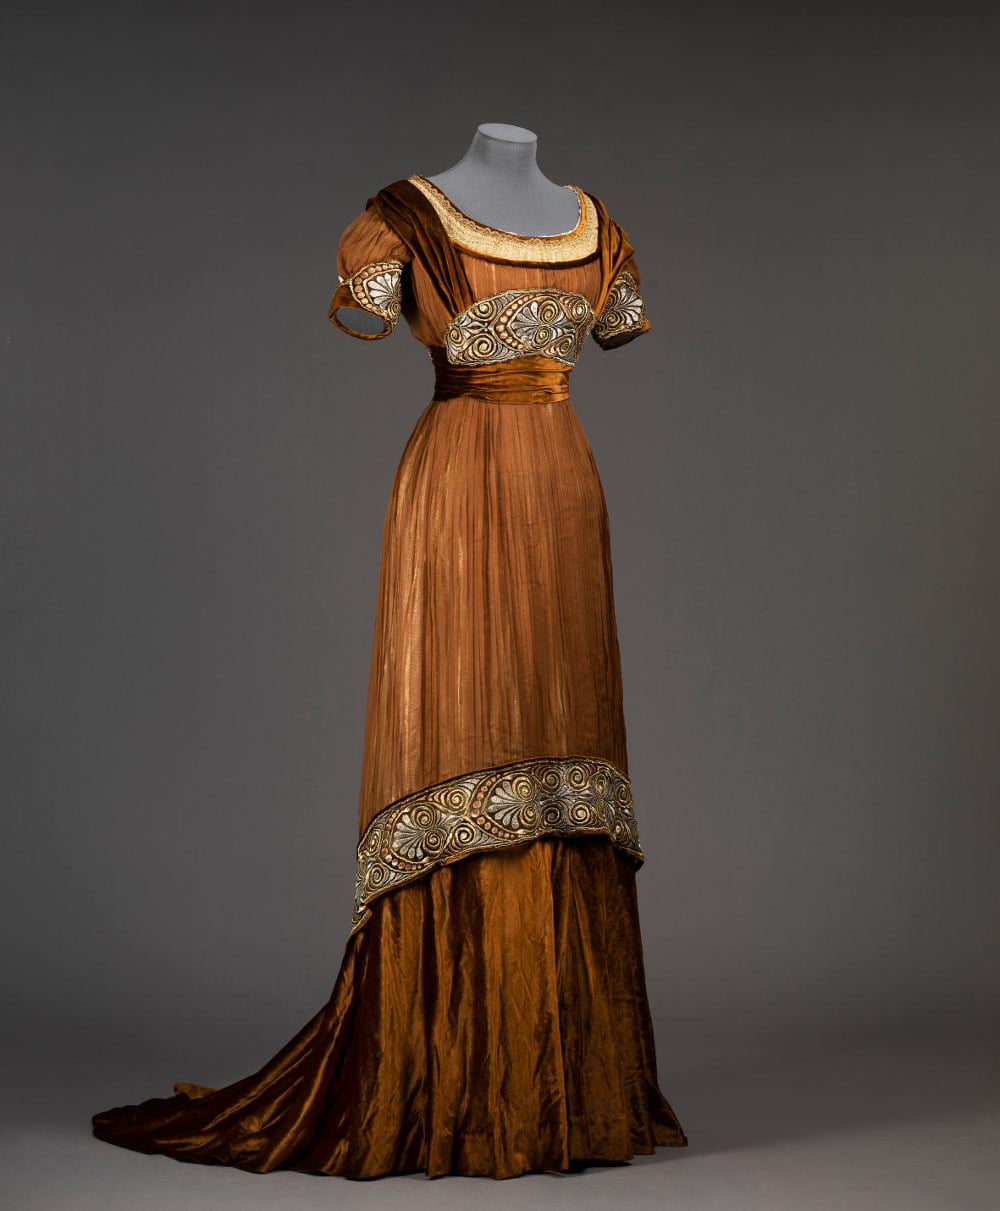 Evening dress by Augusta Lundin, 1913, Sweden, silk georgette with gold, silver and copper silk thread embroidery, lamé, velvet, gold lace, chiffon, satin, Göteborgs Stadsmuseum